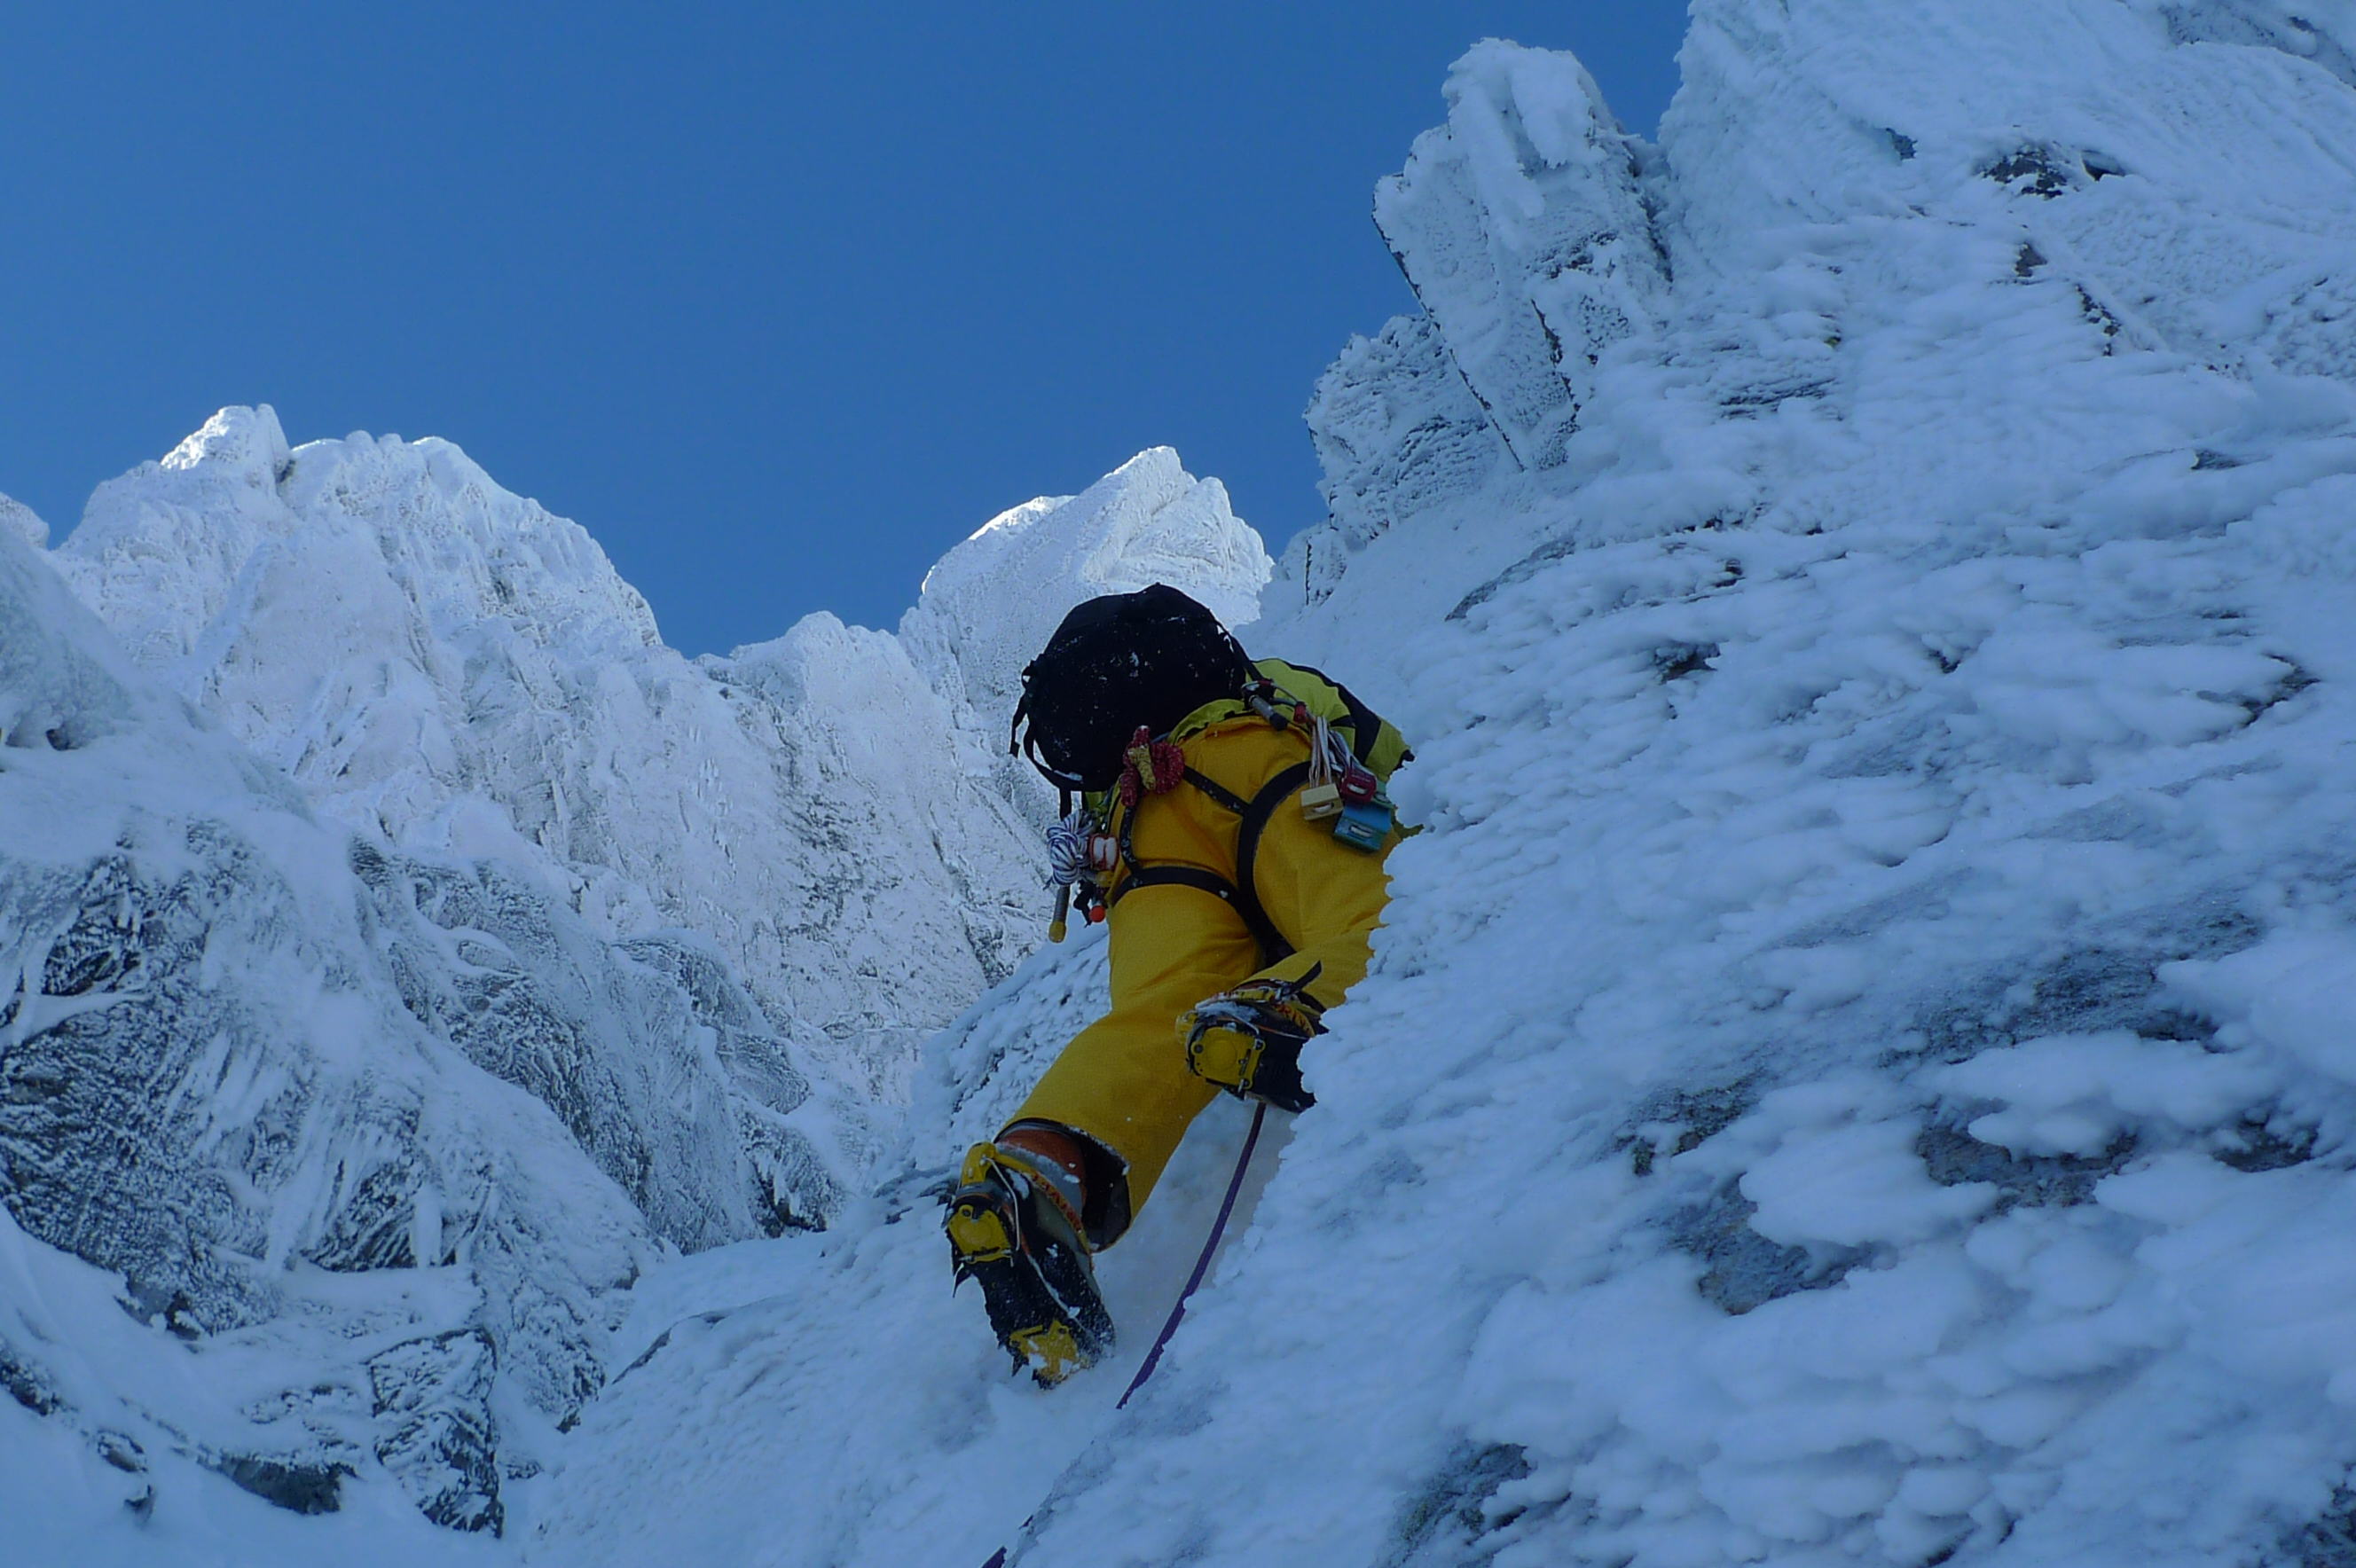 Leading the first pitch of North Gully, Ben Nevis